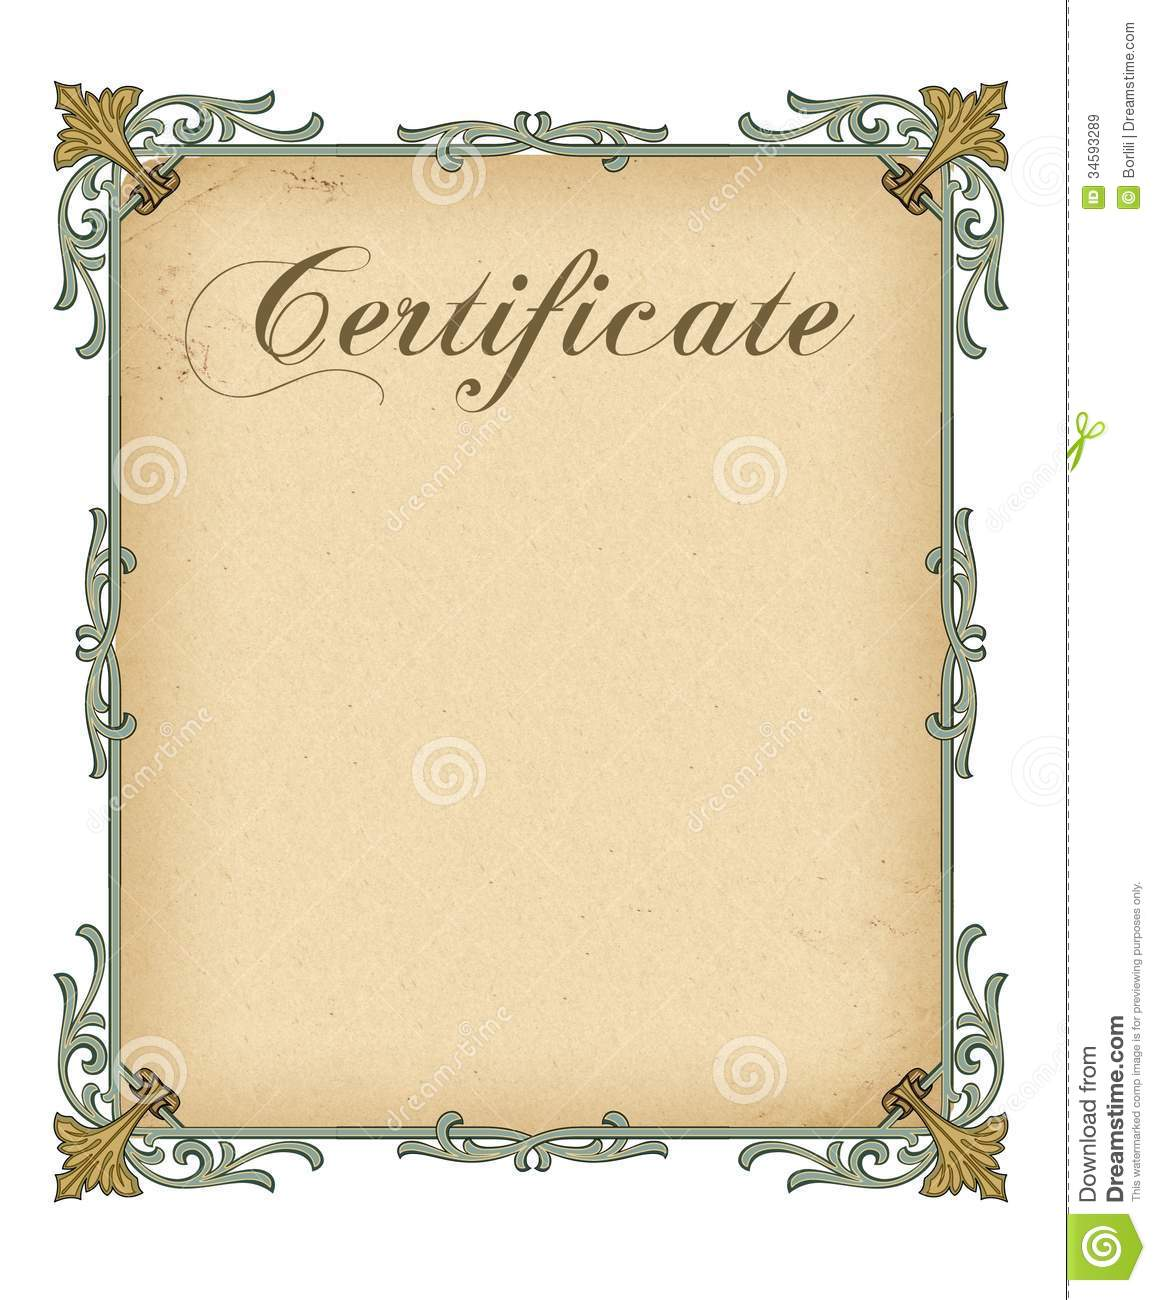 blank certificate template stock illustration illustration of